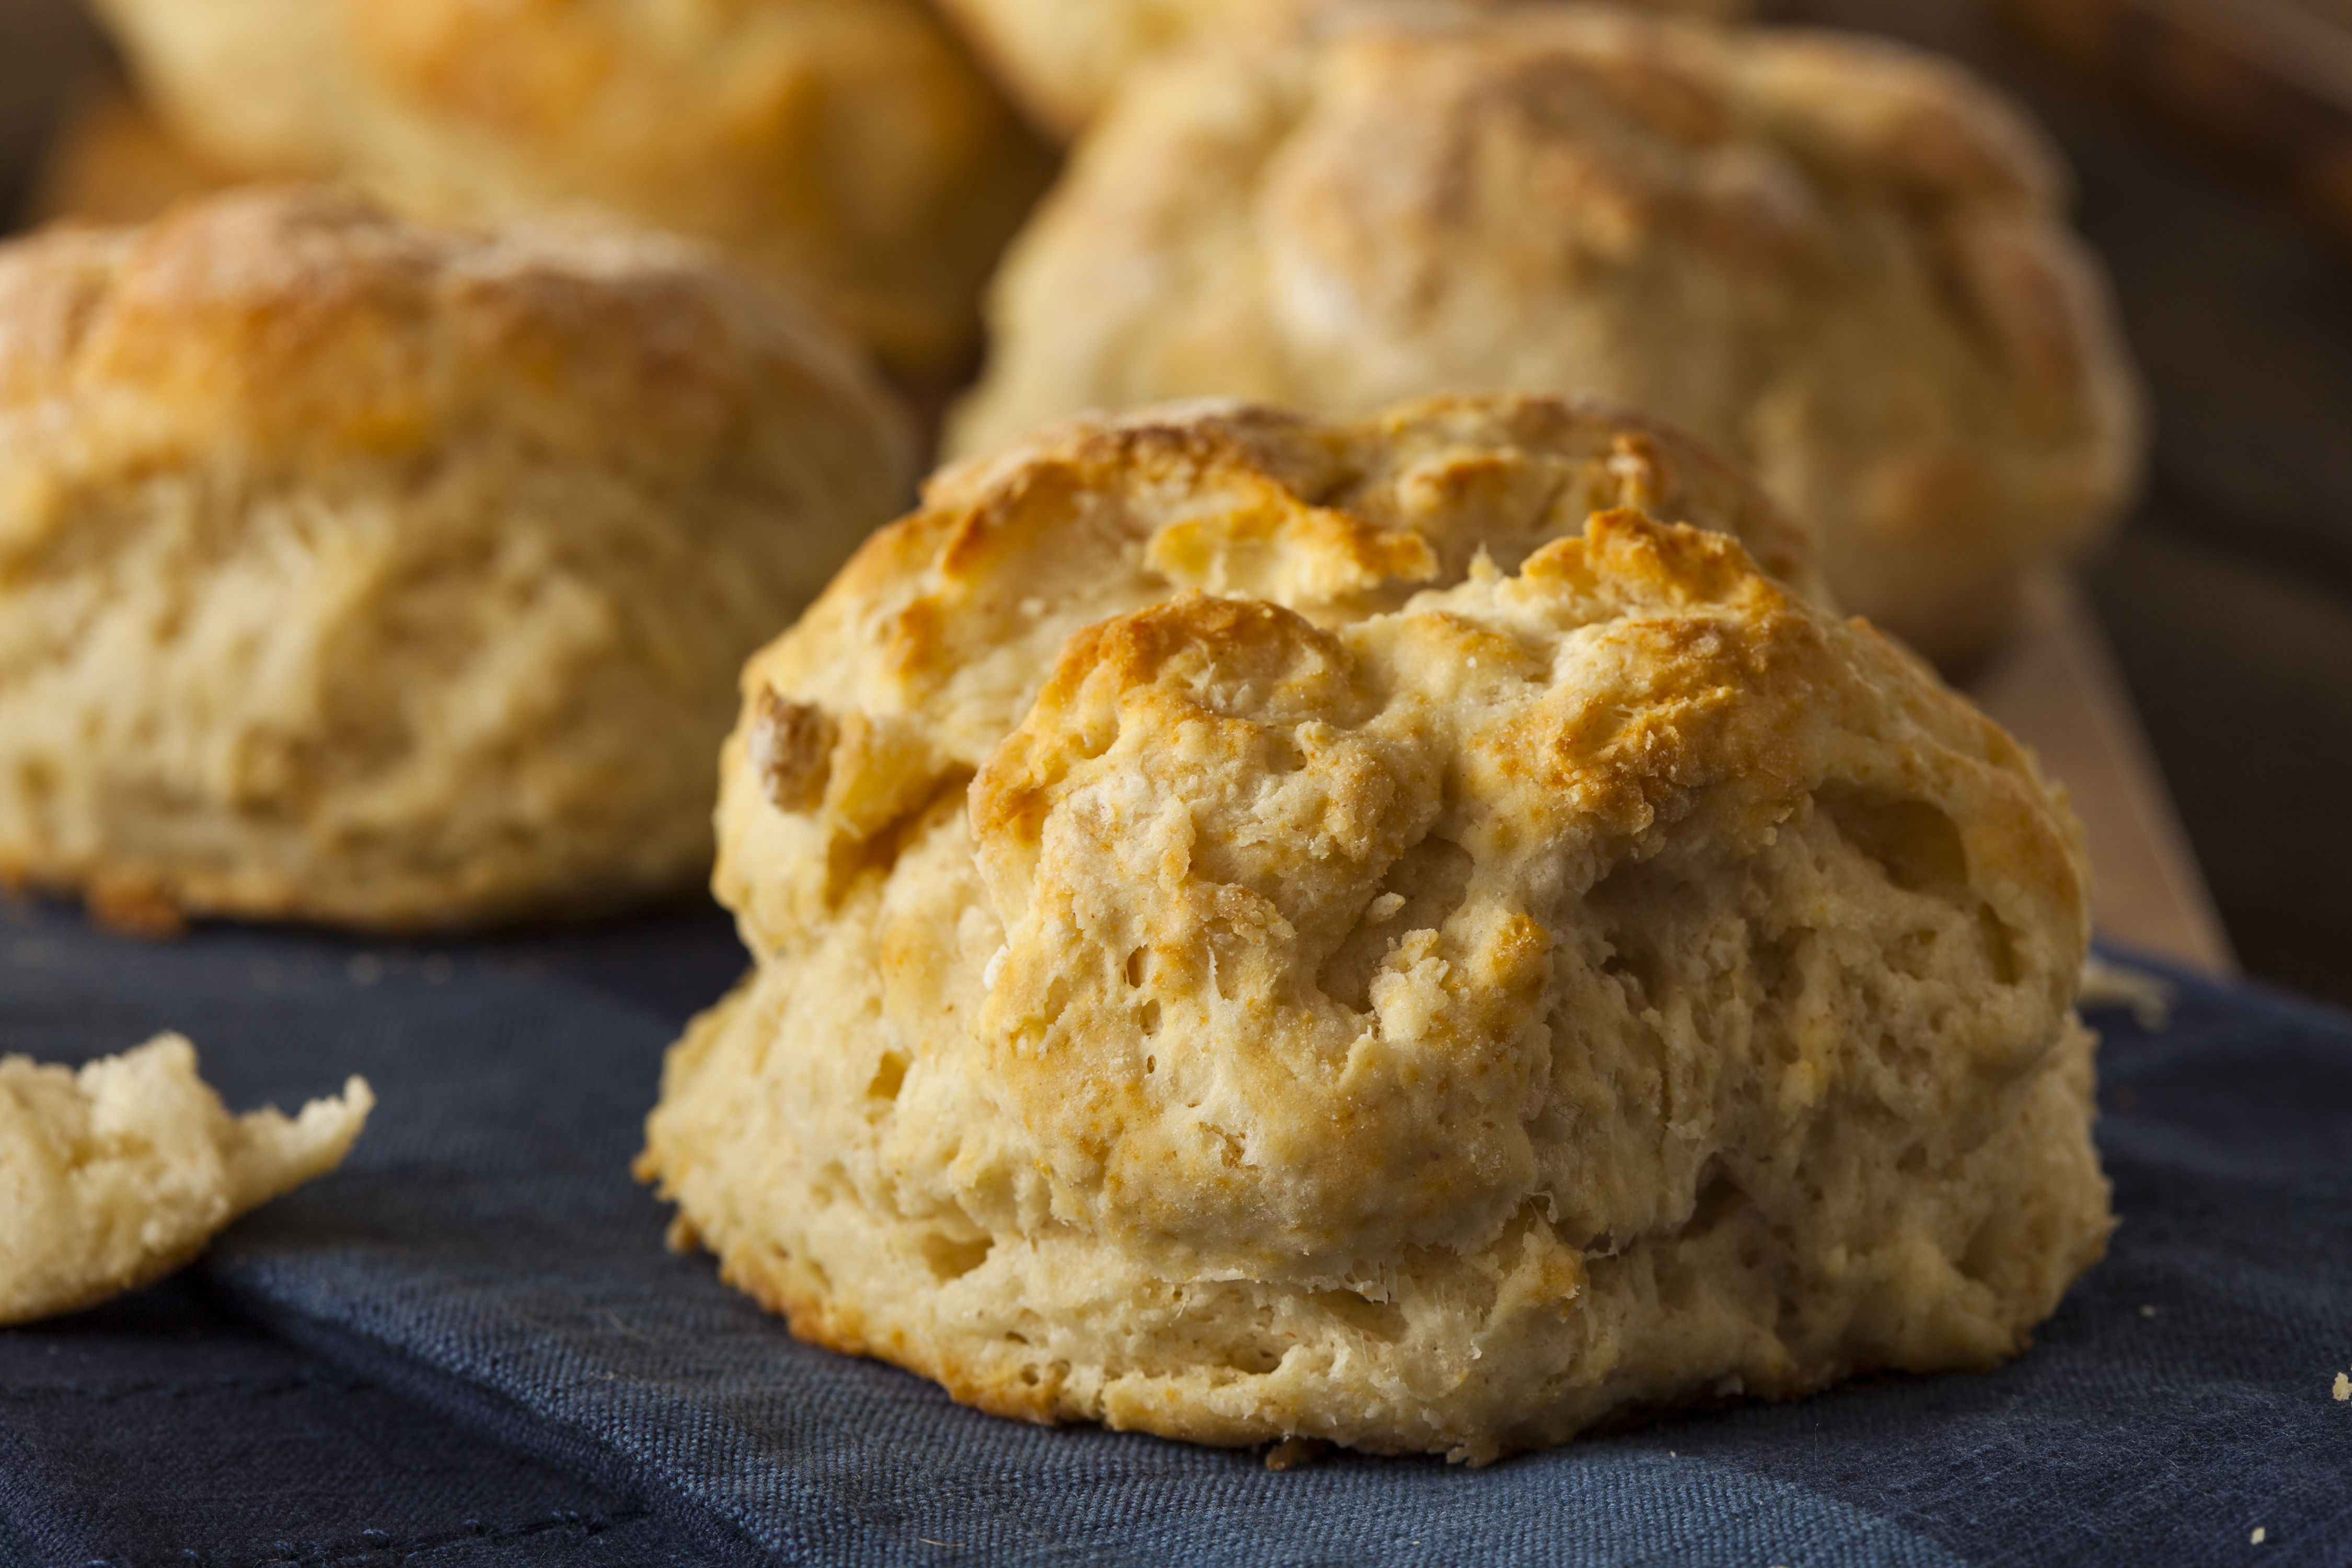 There's a Scientific Reason Southerners Make the Best Biscuits